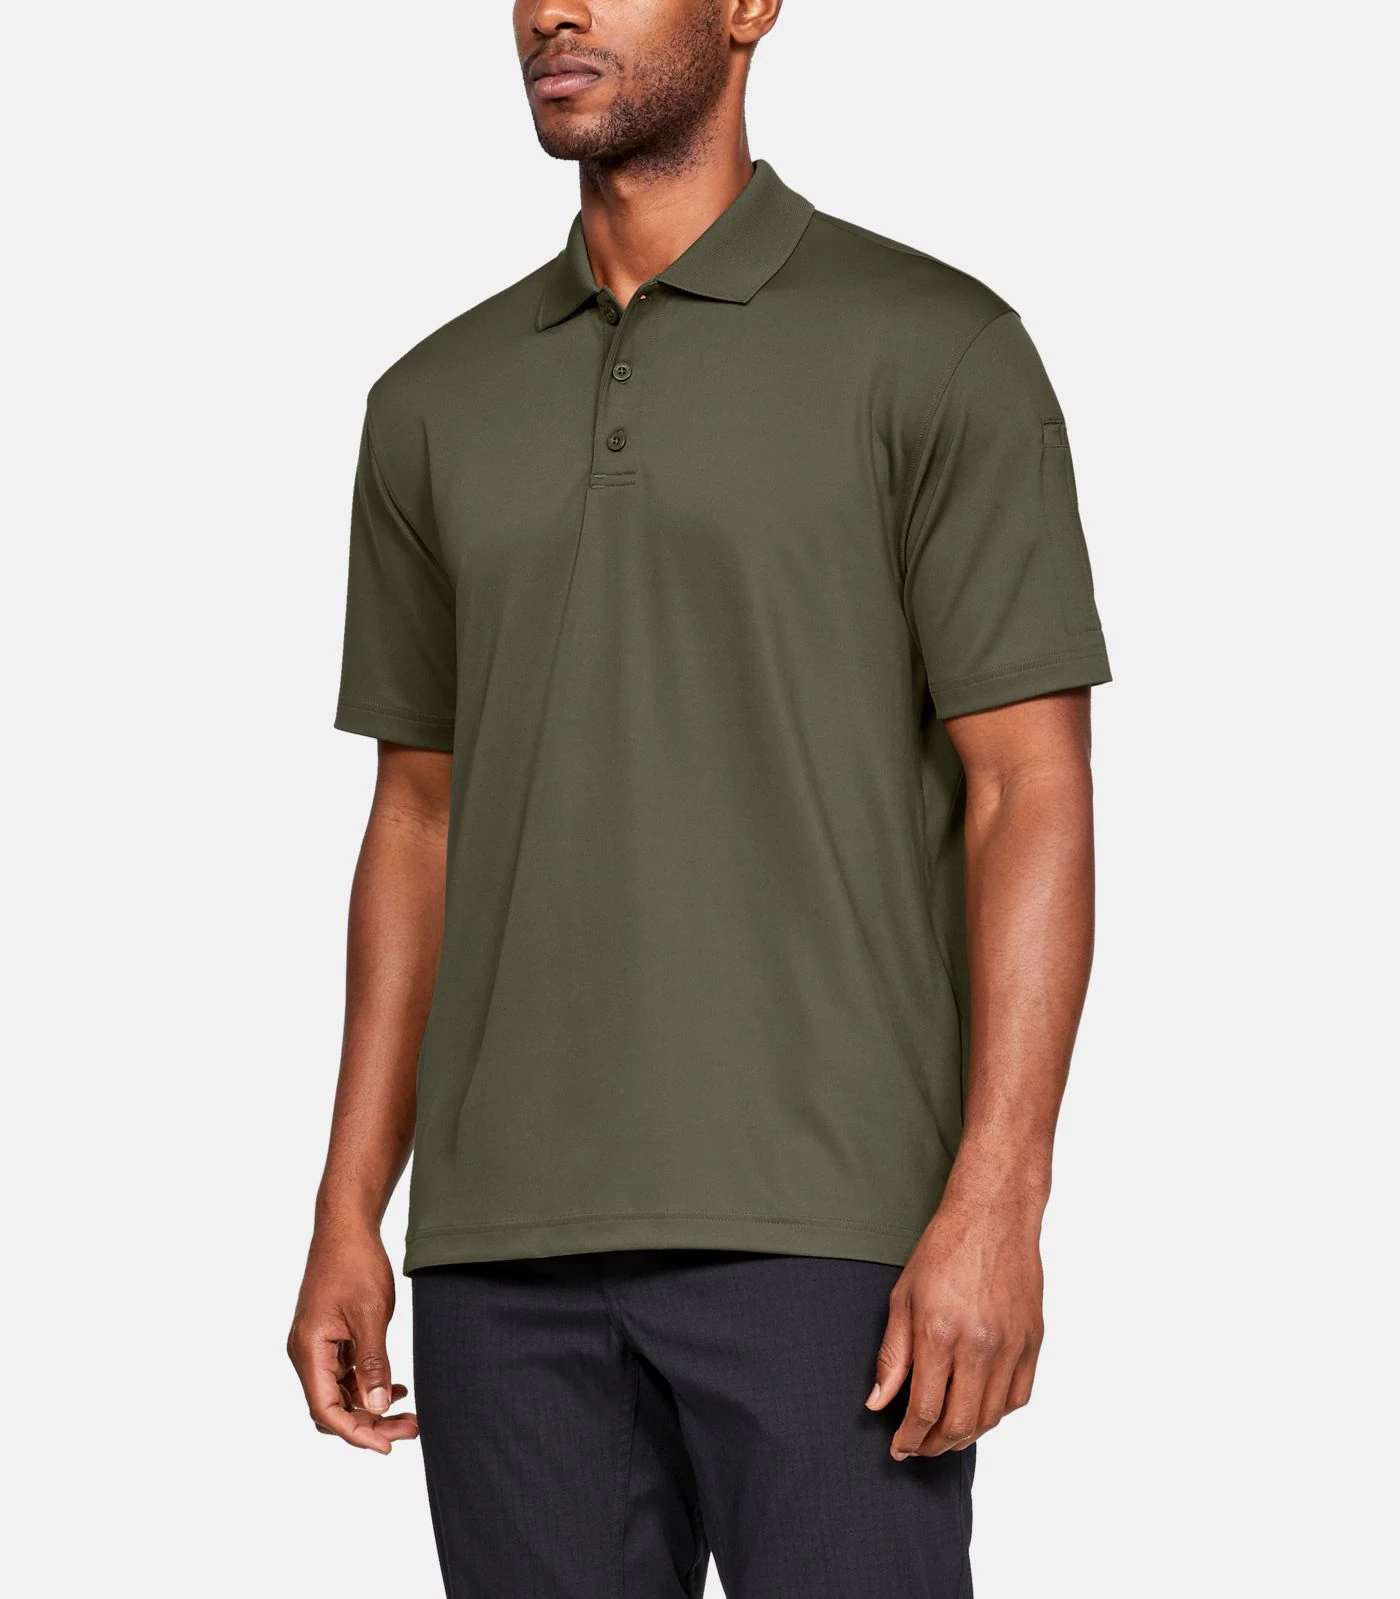 MENS_POLO_TacPerformance-SS_UAR1279759390_08